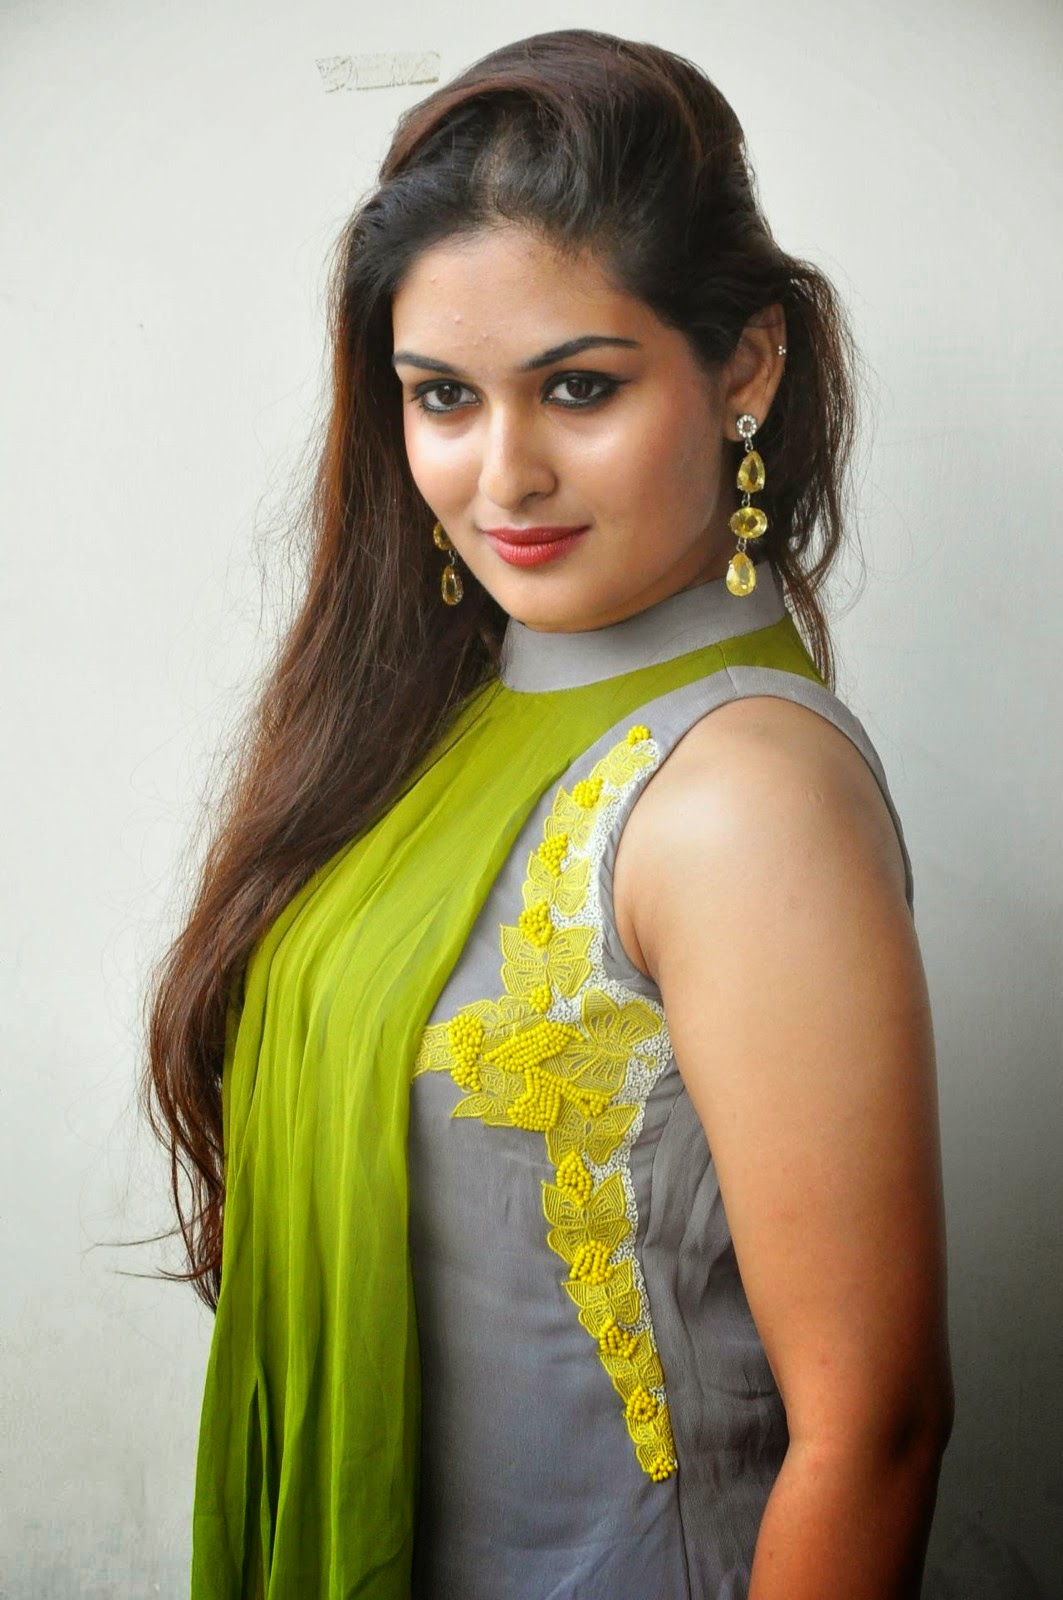 Prayaga Martin is an Indian actress from Kerala. She began her career ...